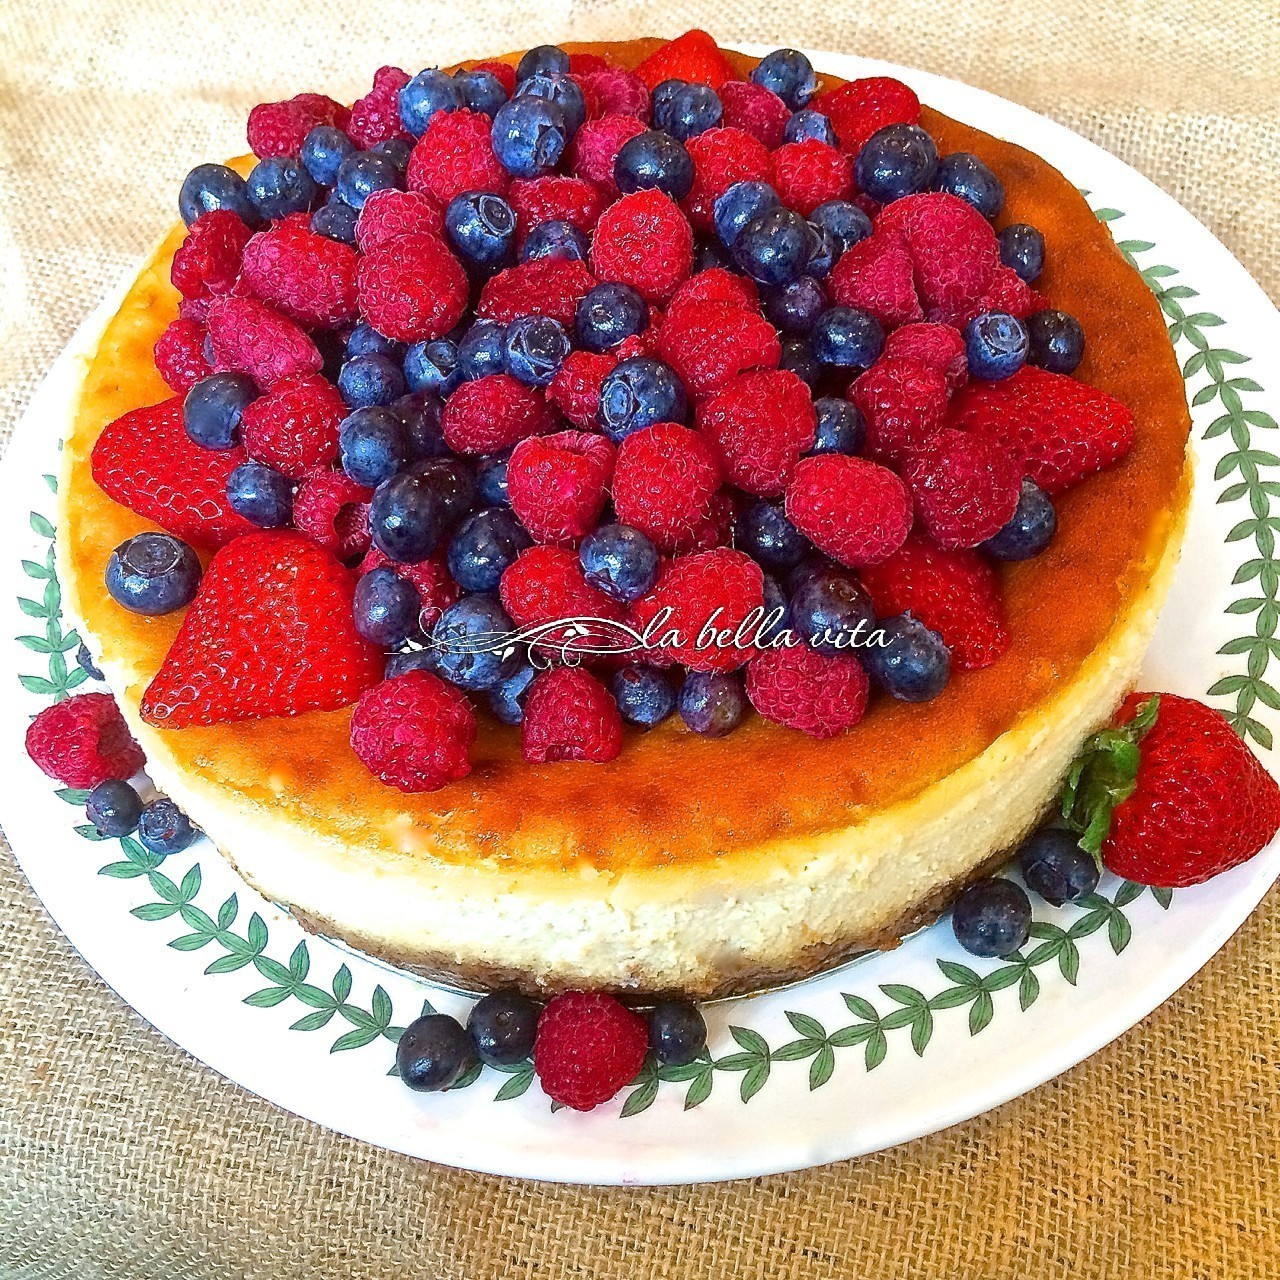 Italian Mascarpone Ricotta Cheesecake Raspberry Almond Crust